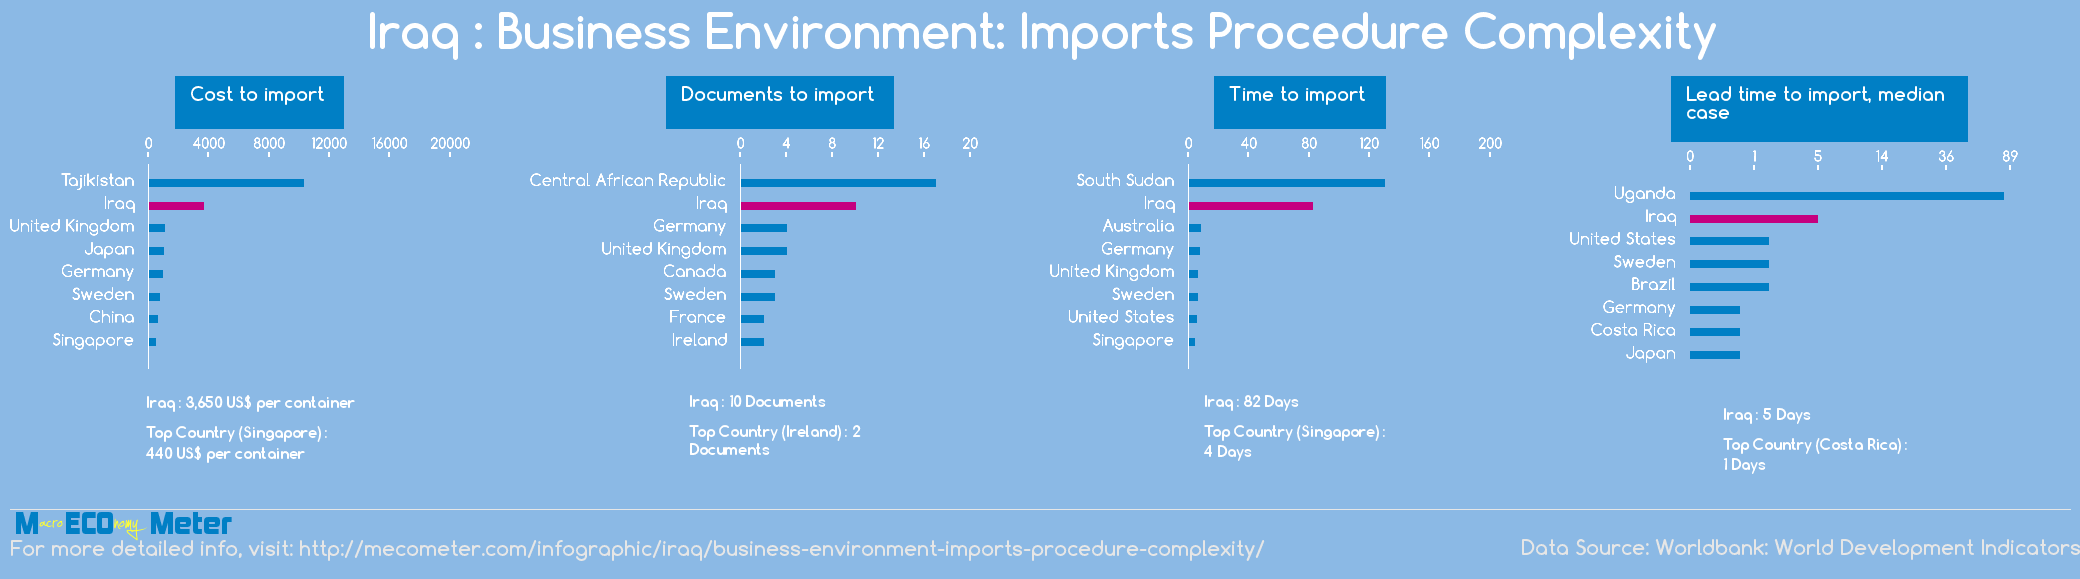 Iraq : Business Environment: Imports Procedure Complexity